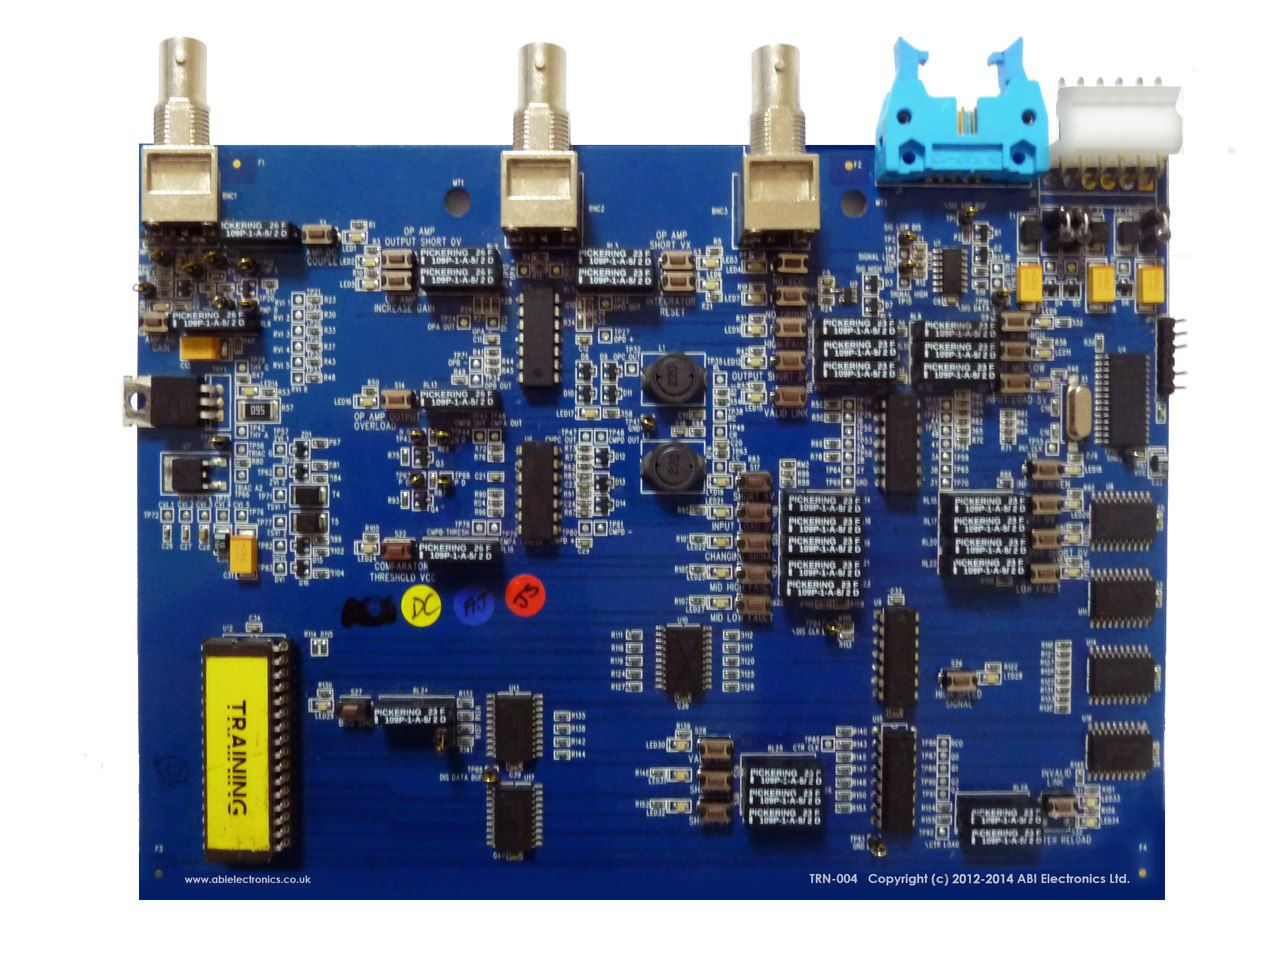 Training Board - System 8